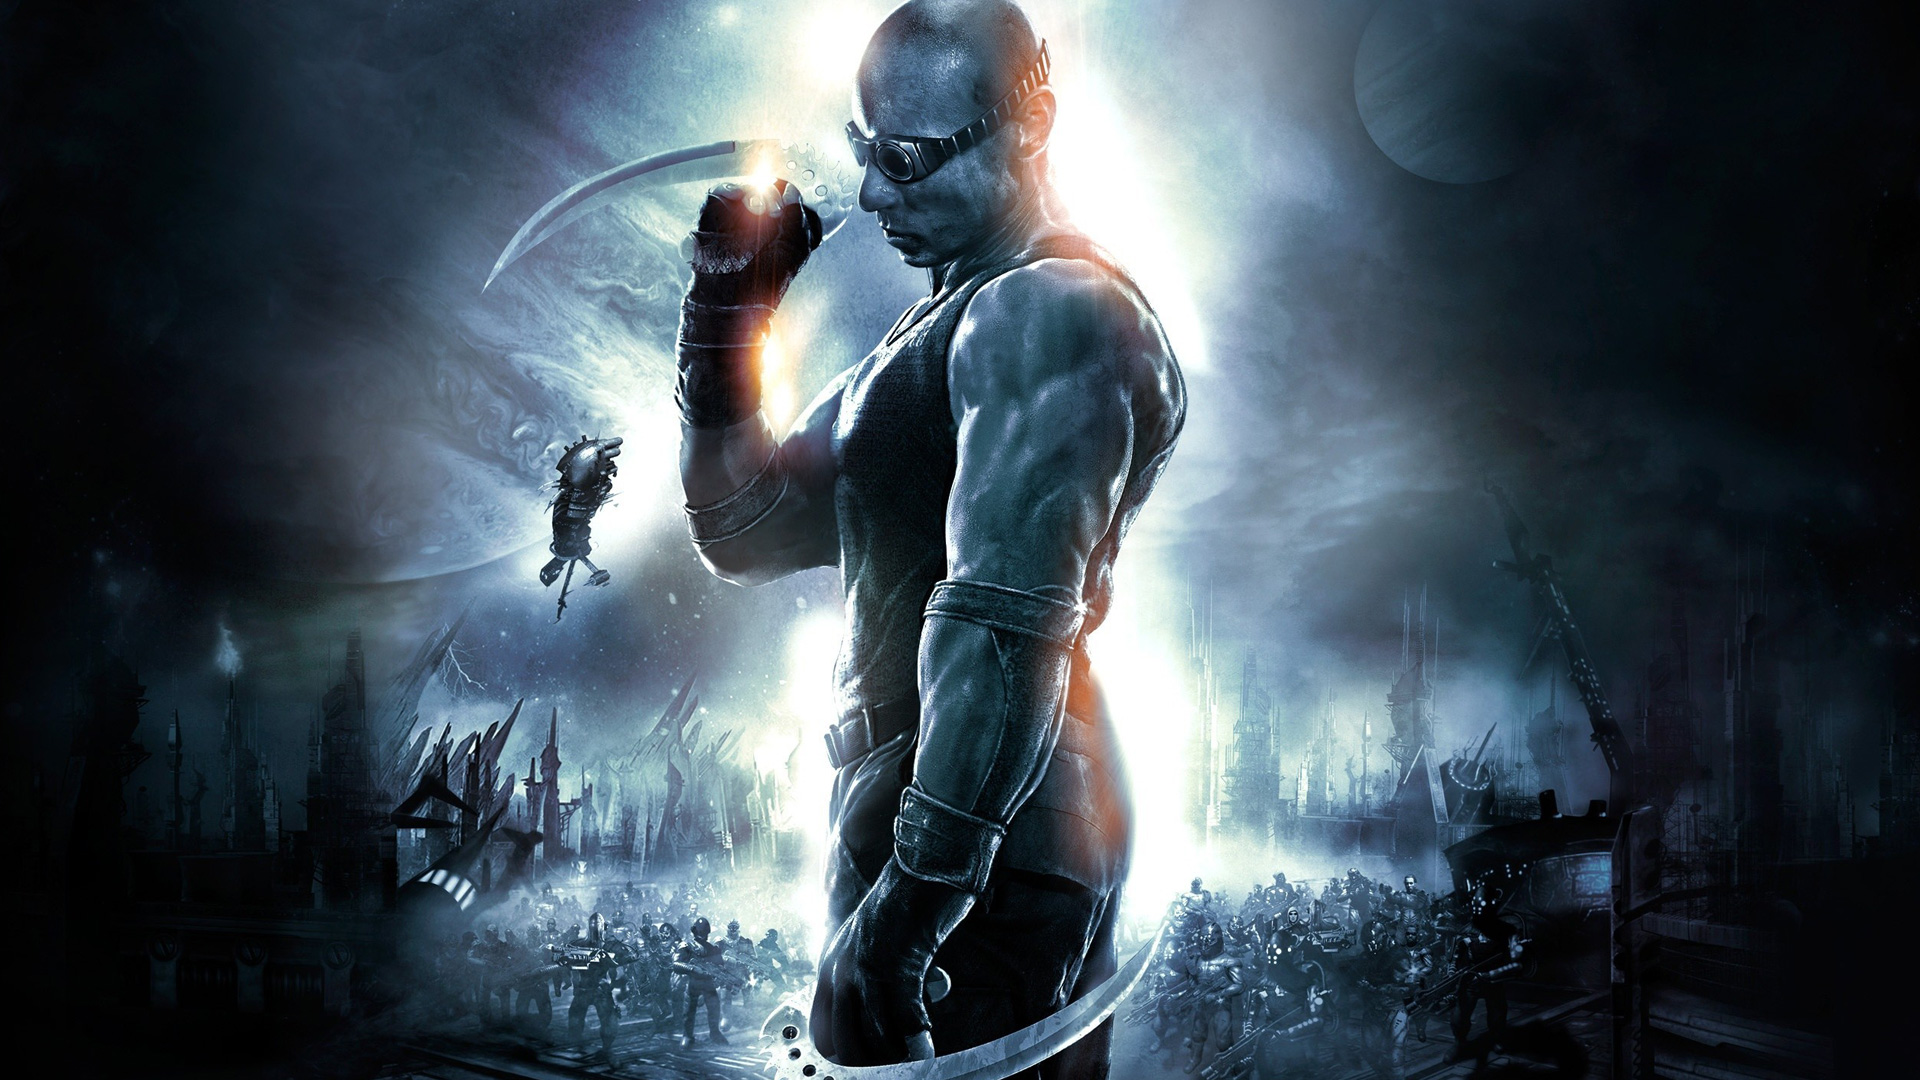 Free The Chronicles of Riddick: Assault on Dark Athena Wallpaper in 1920x1080